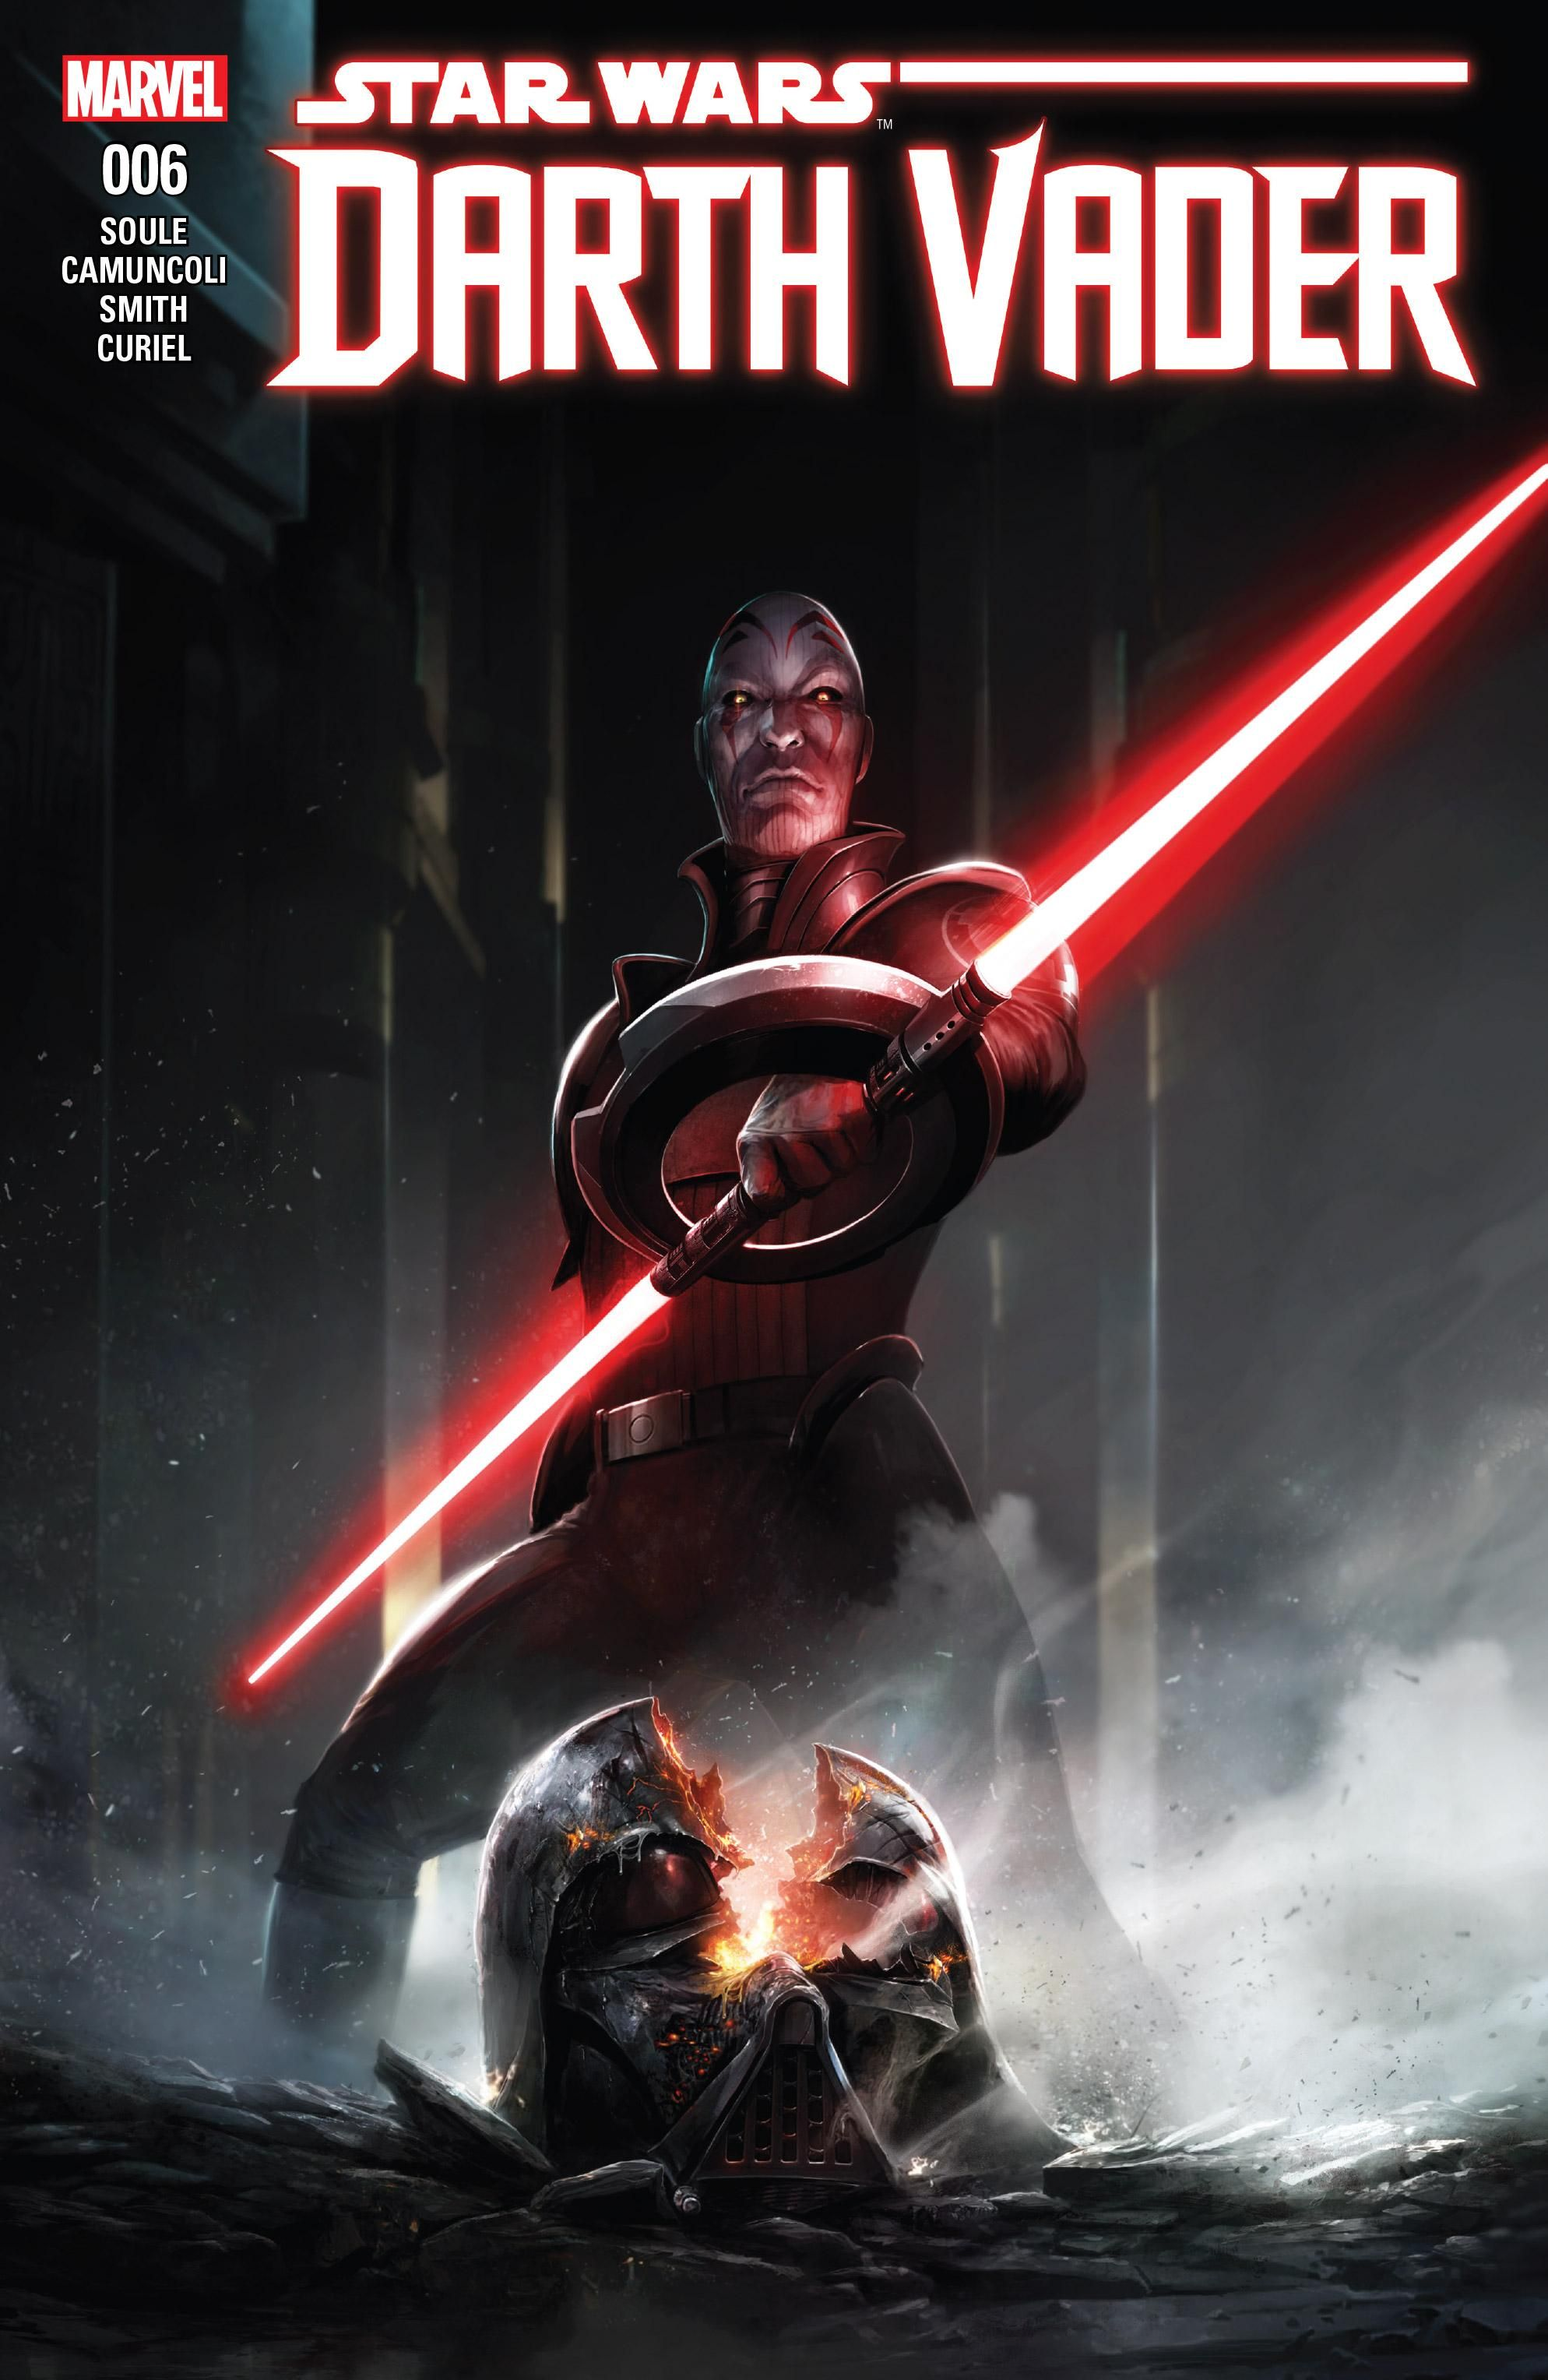 Darth Vader Dark Lord Of The Sith 6 The Chosen One Part Vi Is The Sixth Issue Of The Comic Book Series Star Wars Comics Star Wars Darth Vader Star Wars Sith